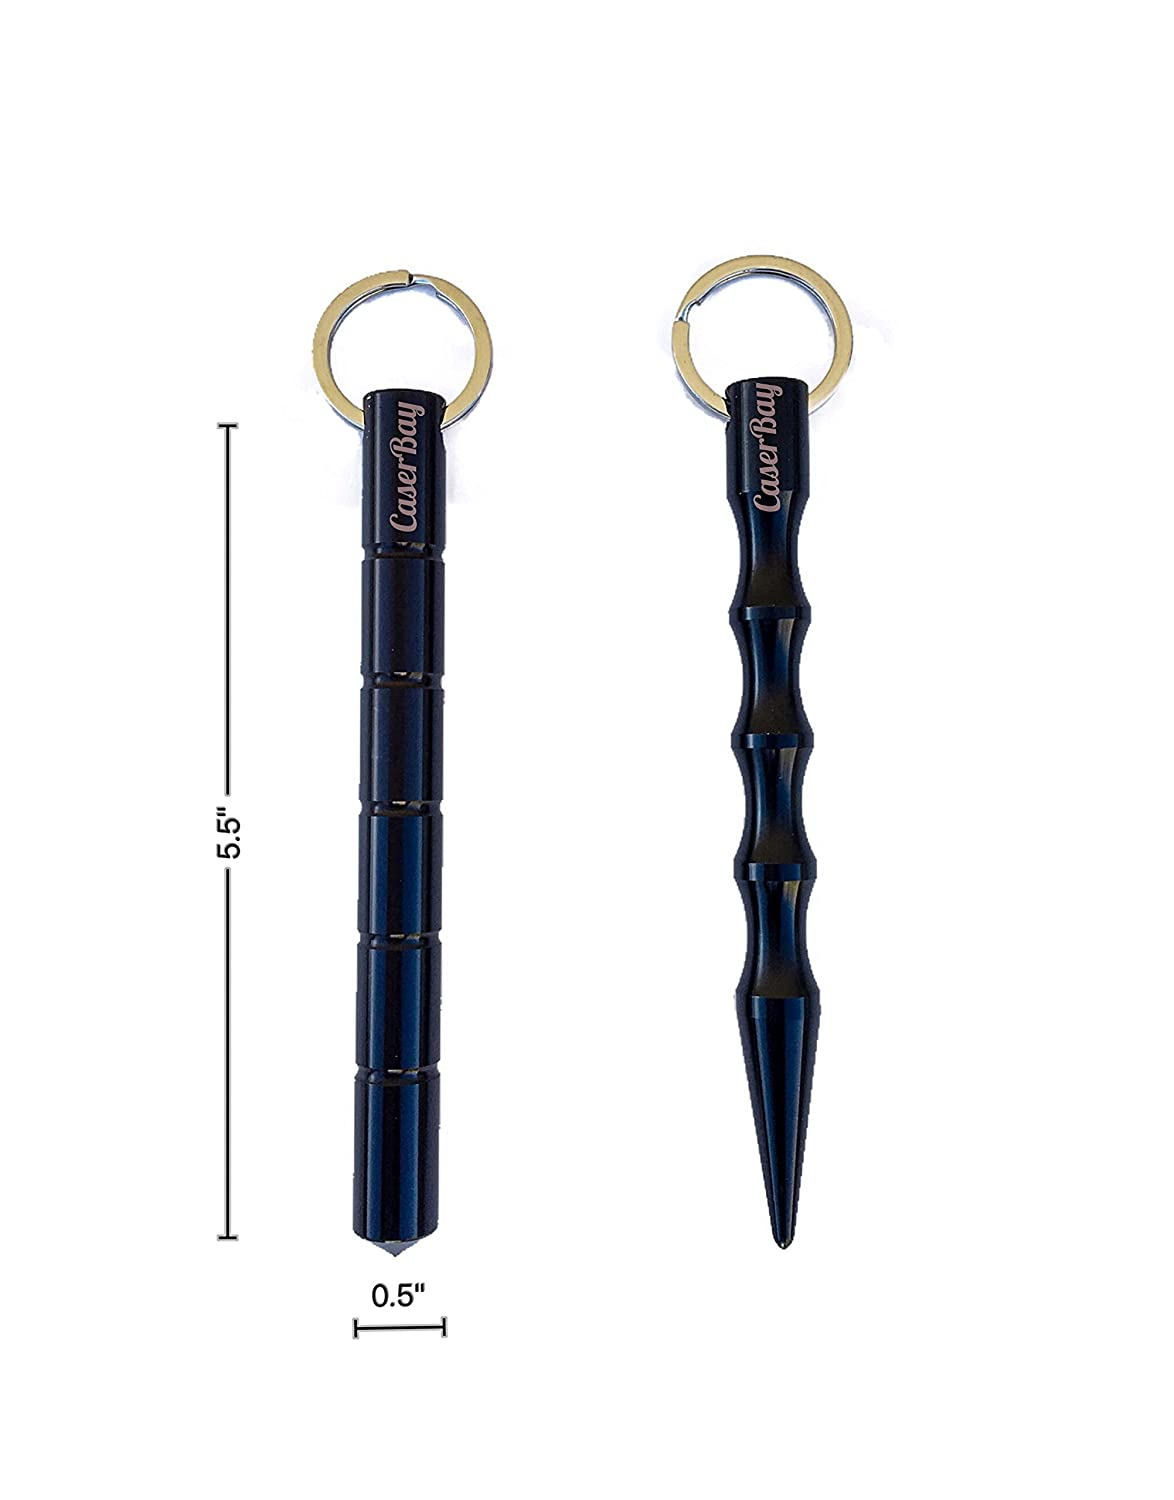 CaserBay Value Pack Pair of Tactical Kubotan Self-Defense Keychain Survival EDC Solid Aluminum Rod